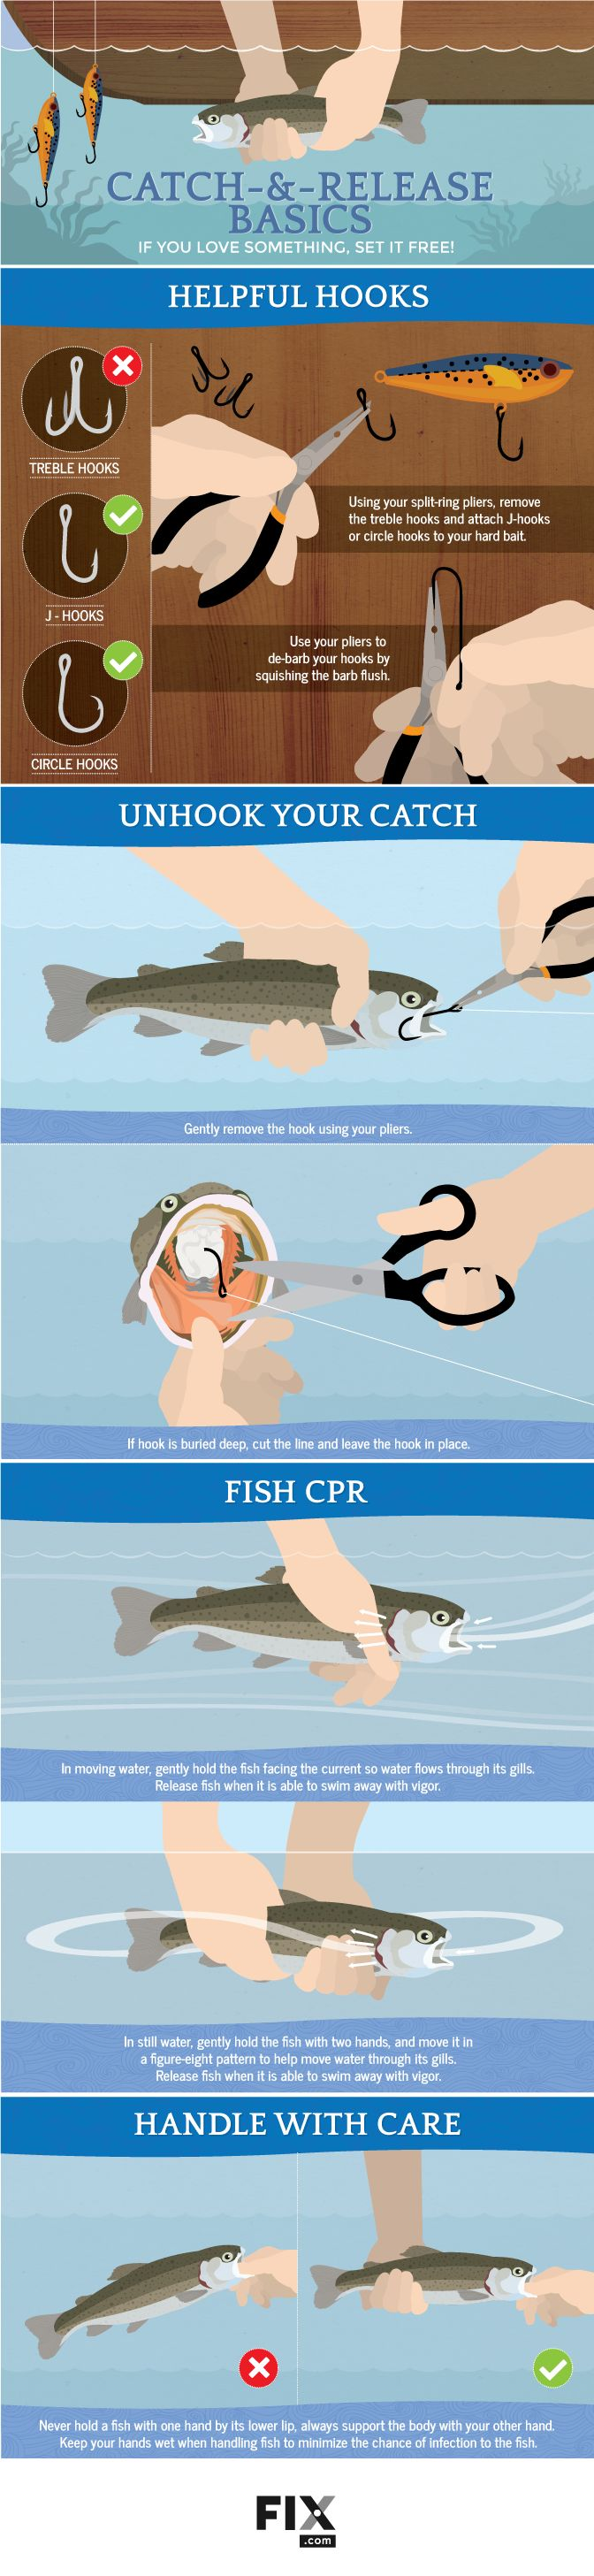 Do you know how to do cpr on a fish learn here with our guide